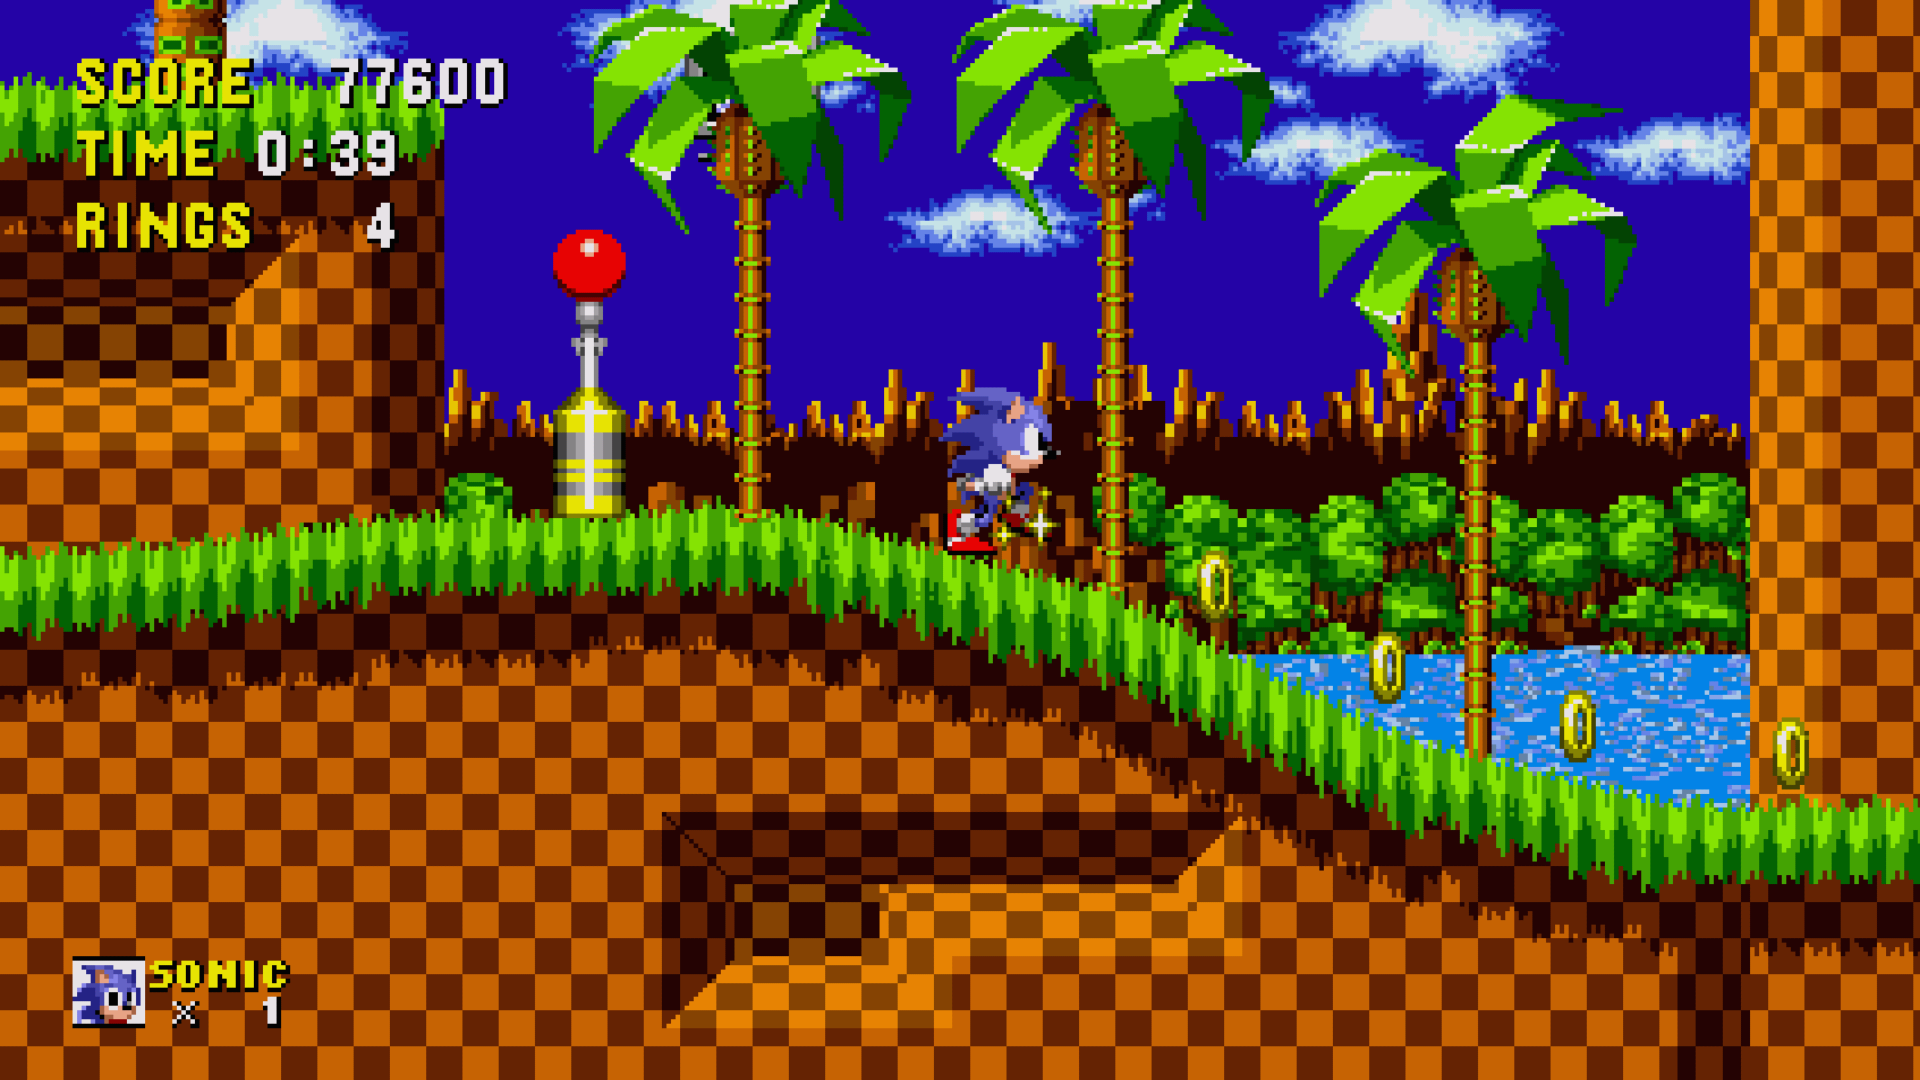 Sonic The Hedgehog Classic screenshot 12